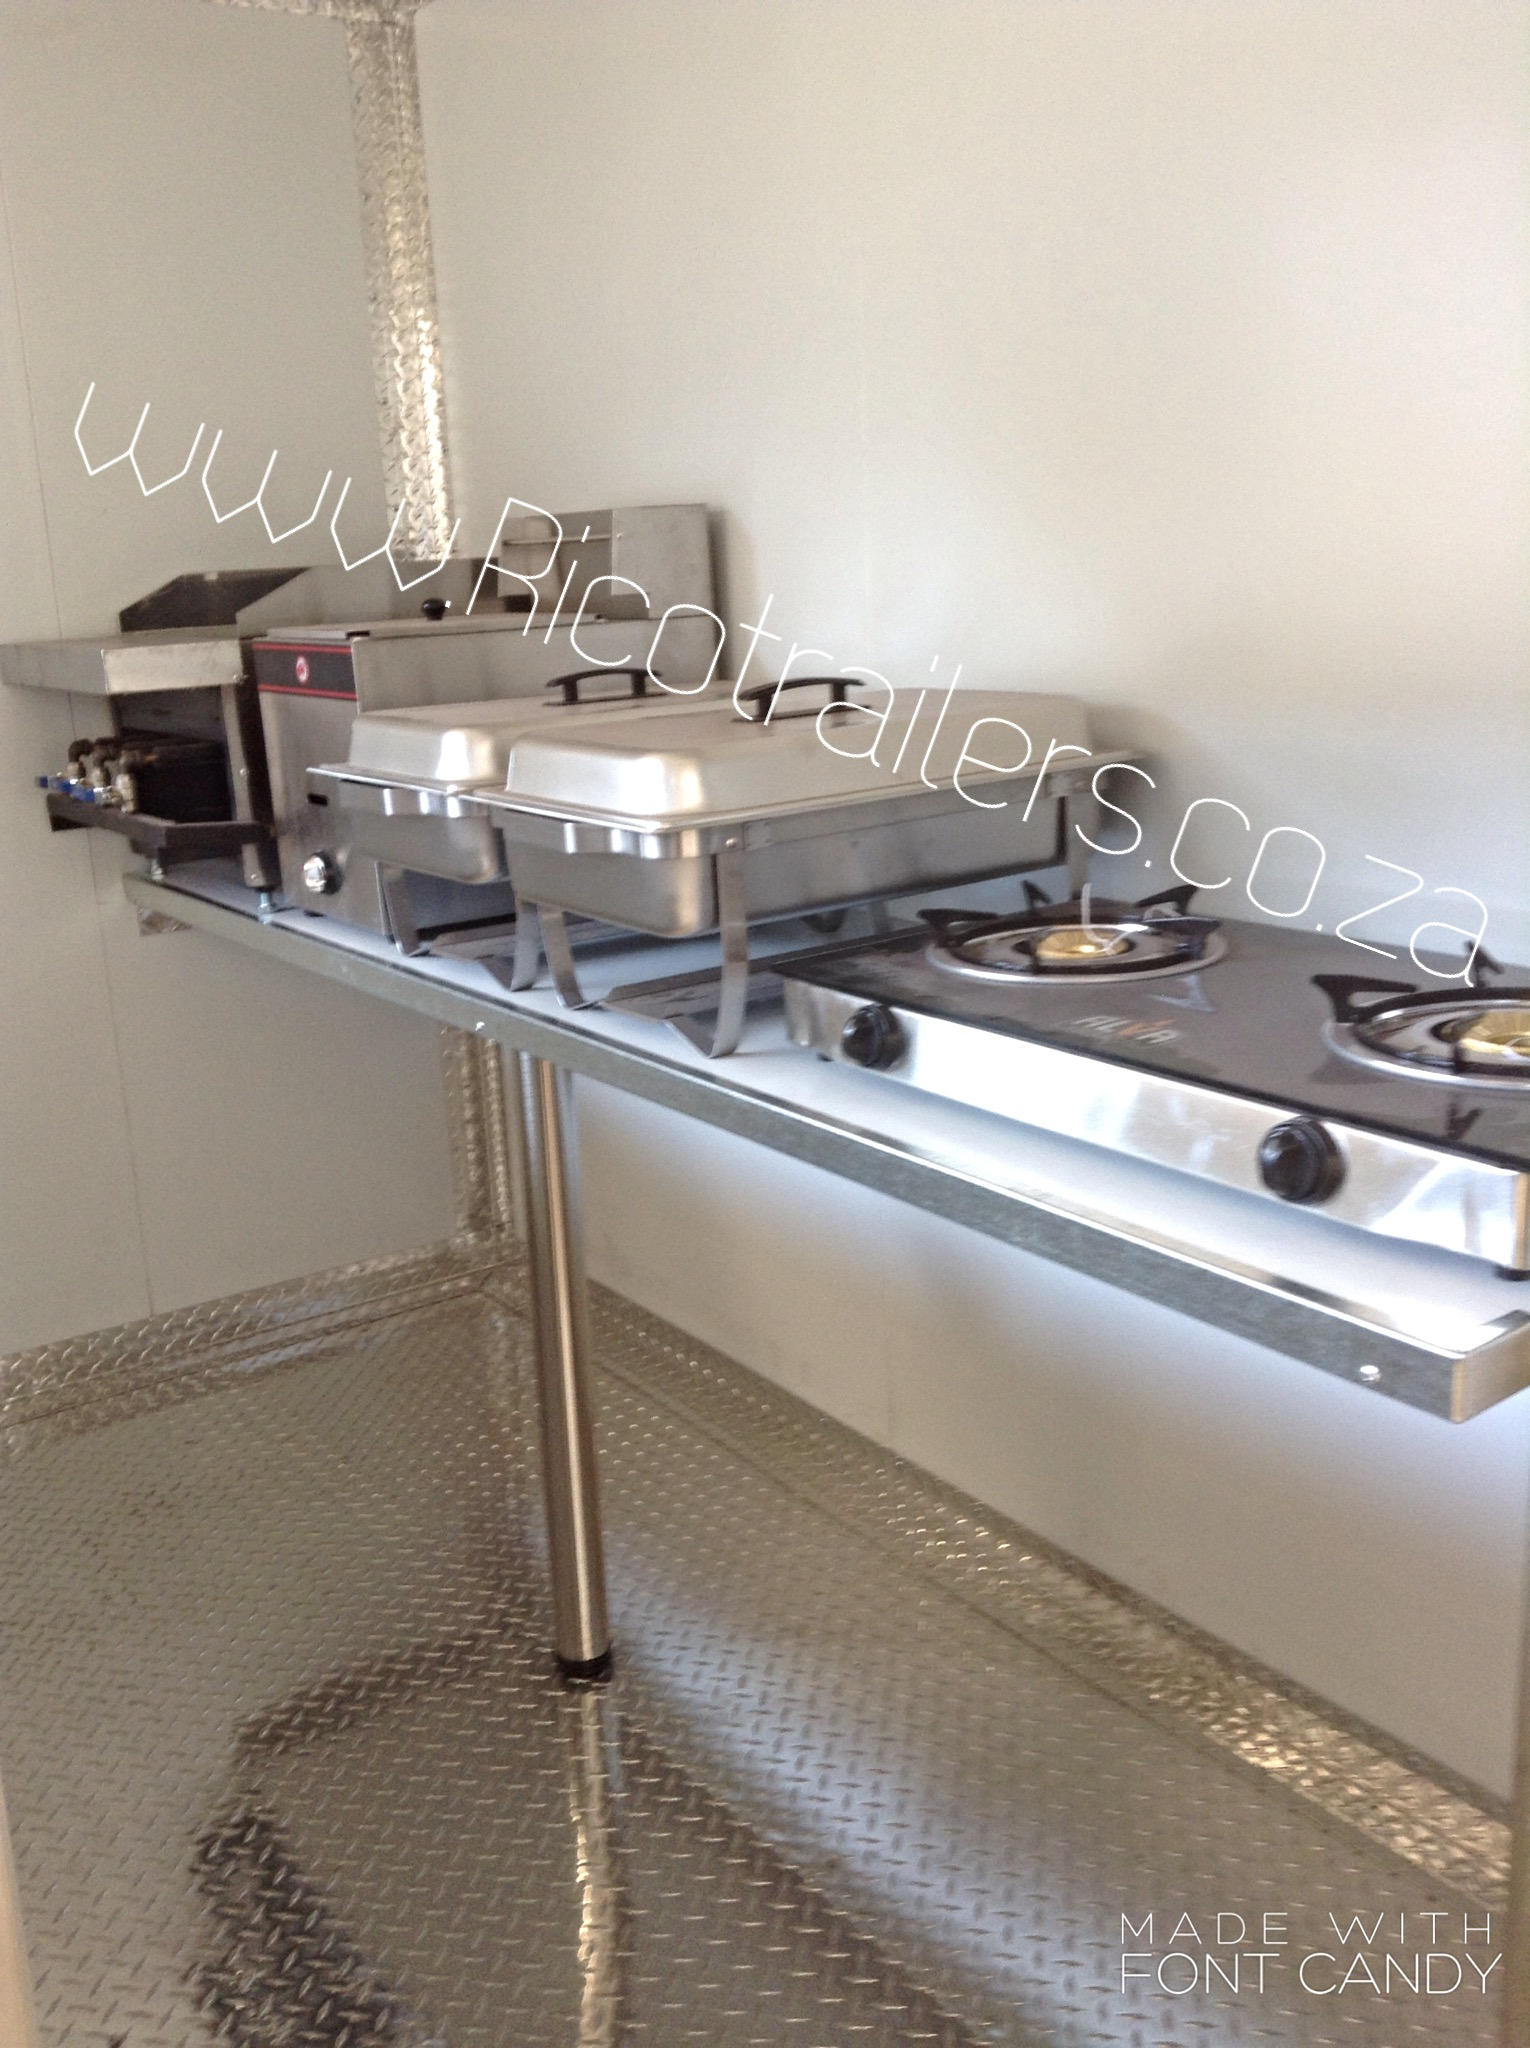 cheap kitchen sink unfinished wood cabinets mobile trailer for sale johannesburg sa